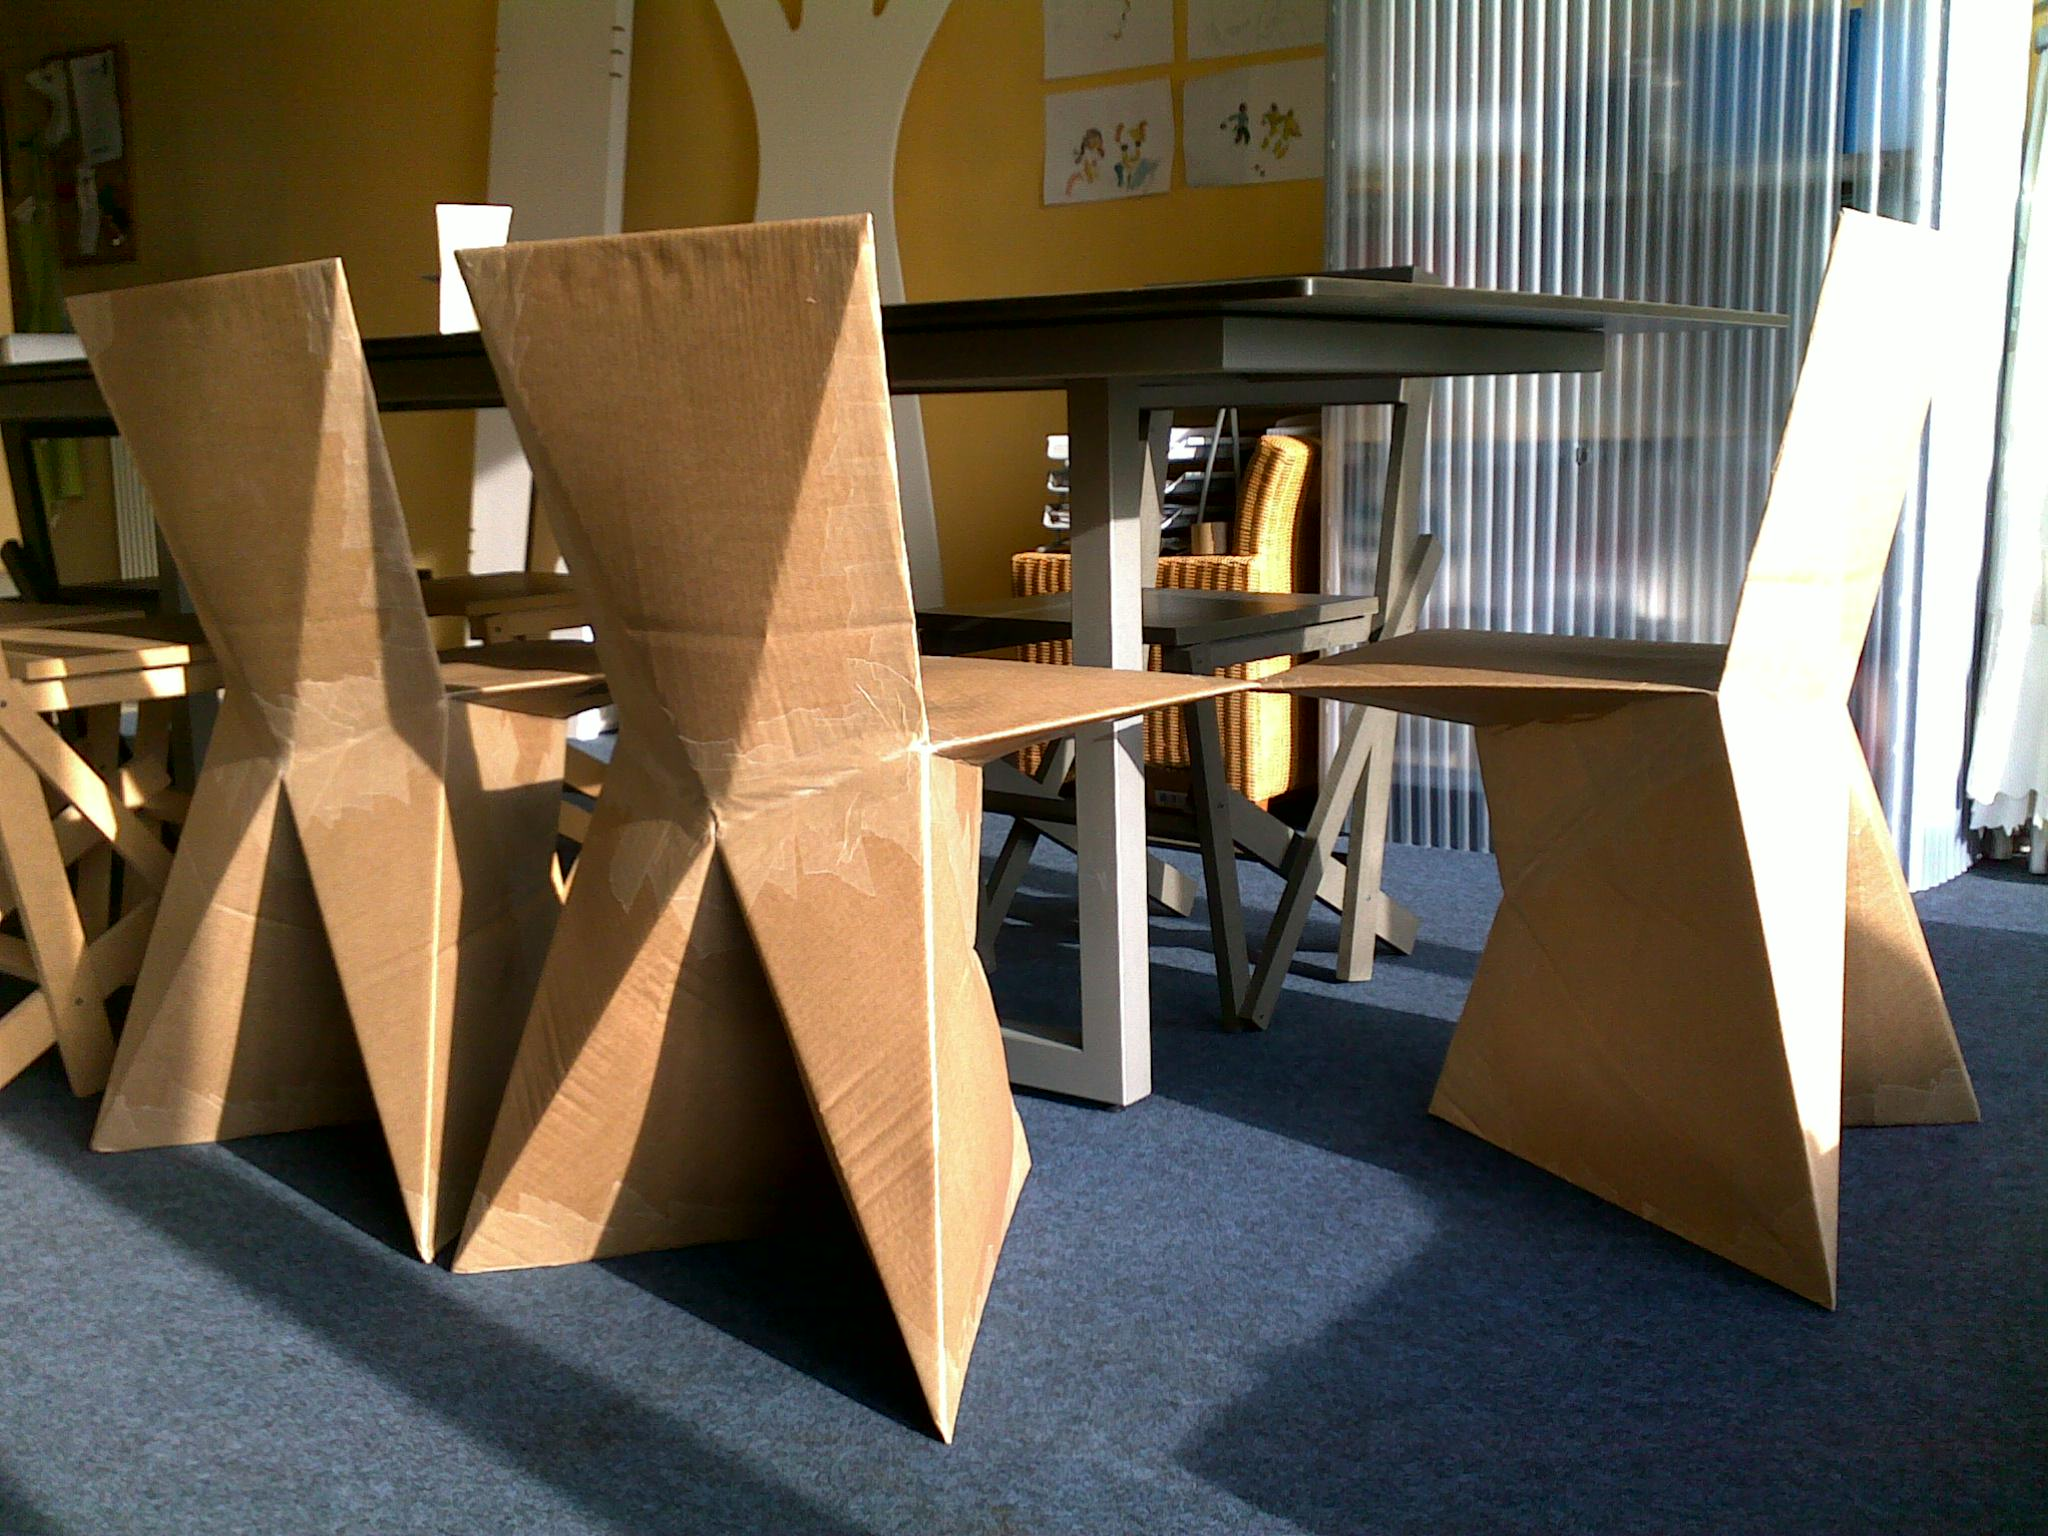 How To Make A Cardboard Chair Cardboard Furniture Plans Pdf Plans Free Download